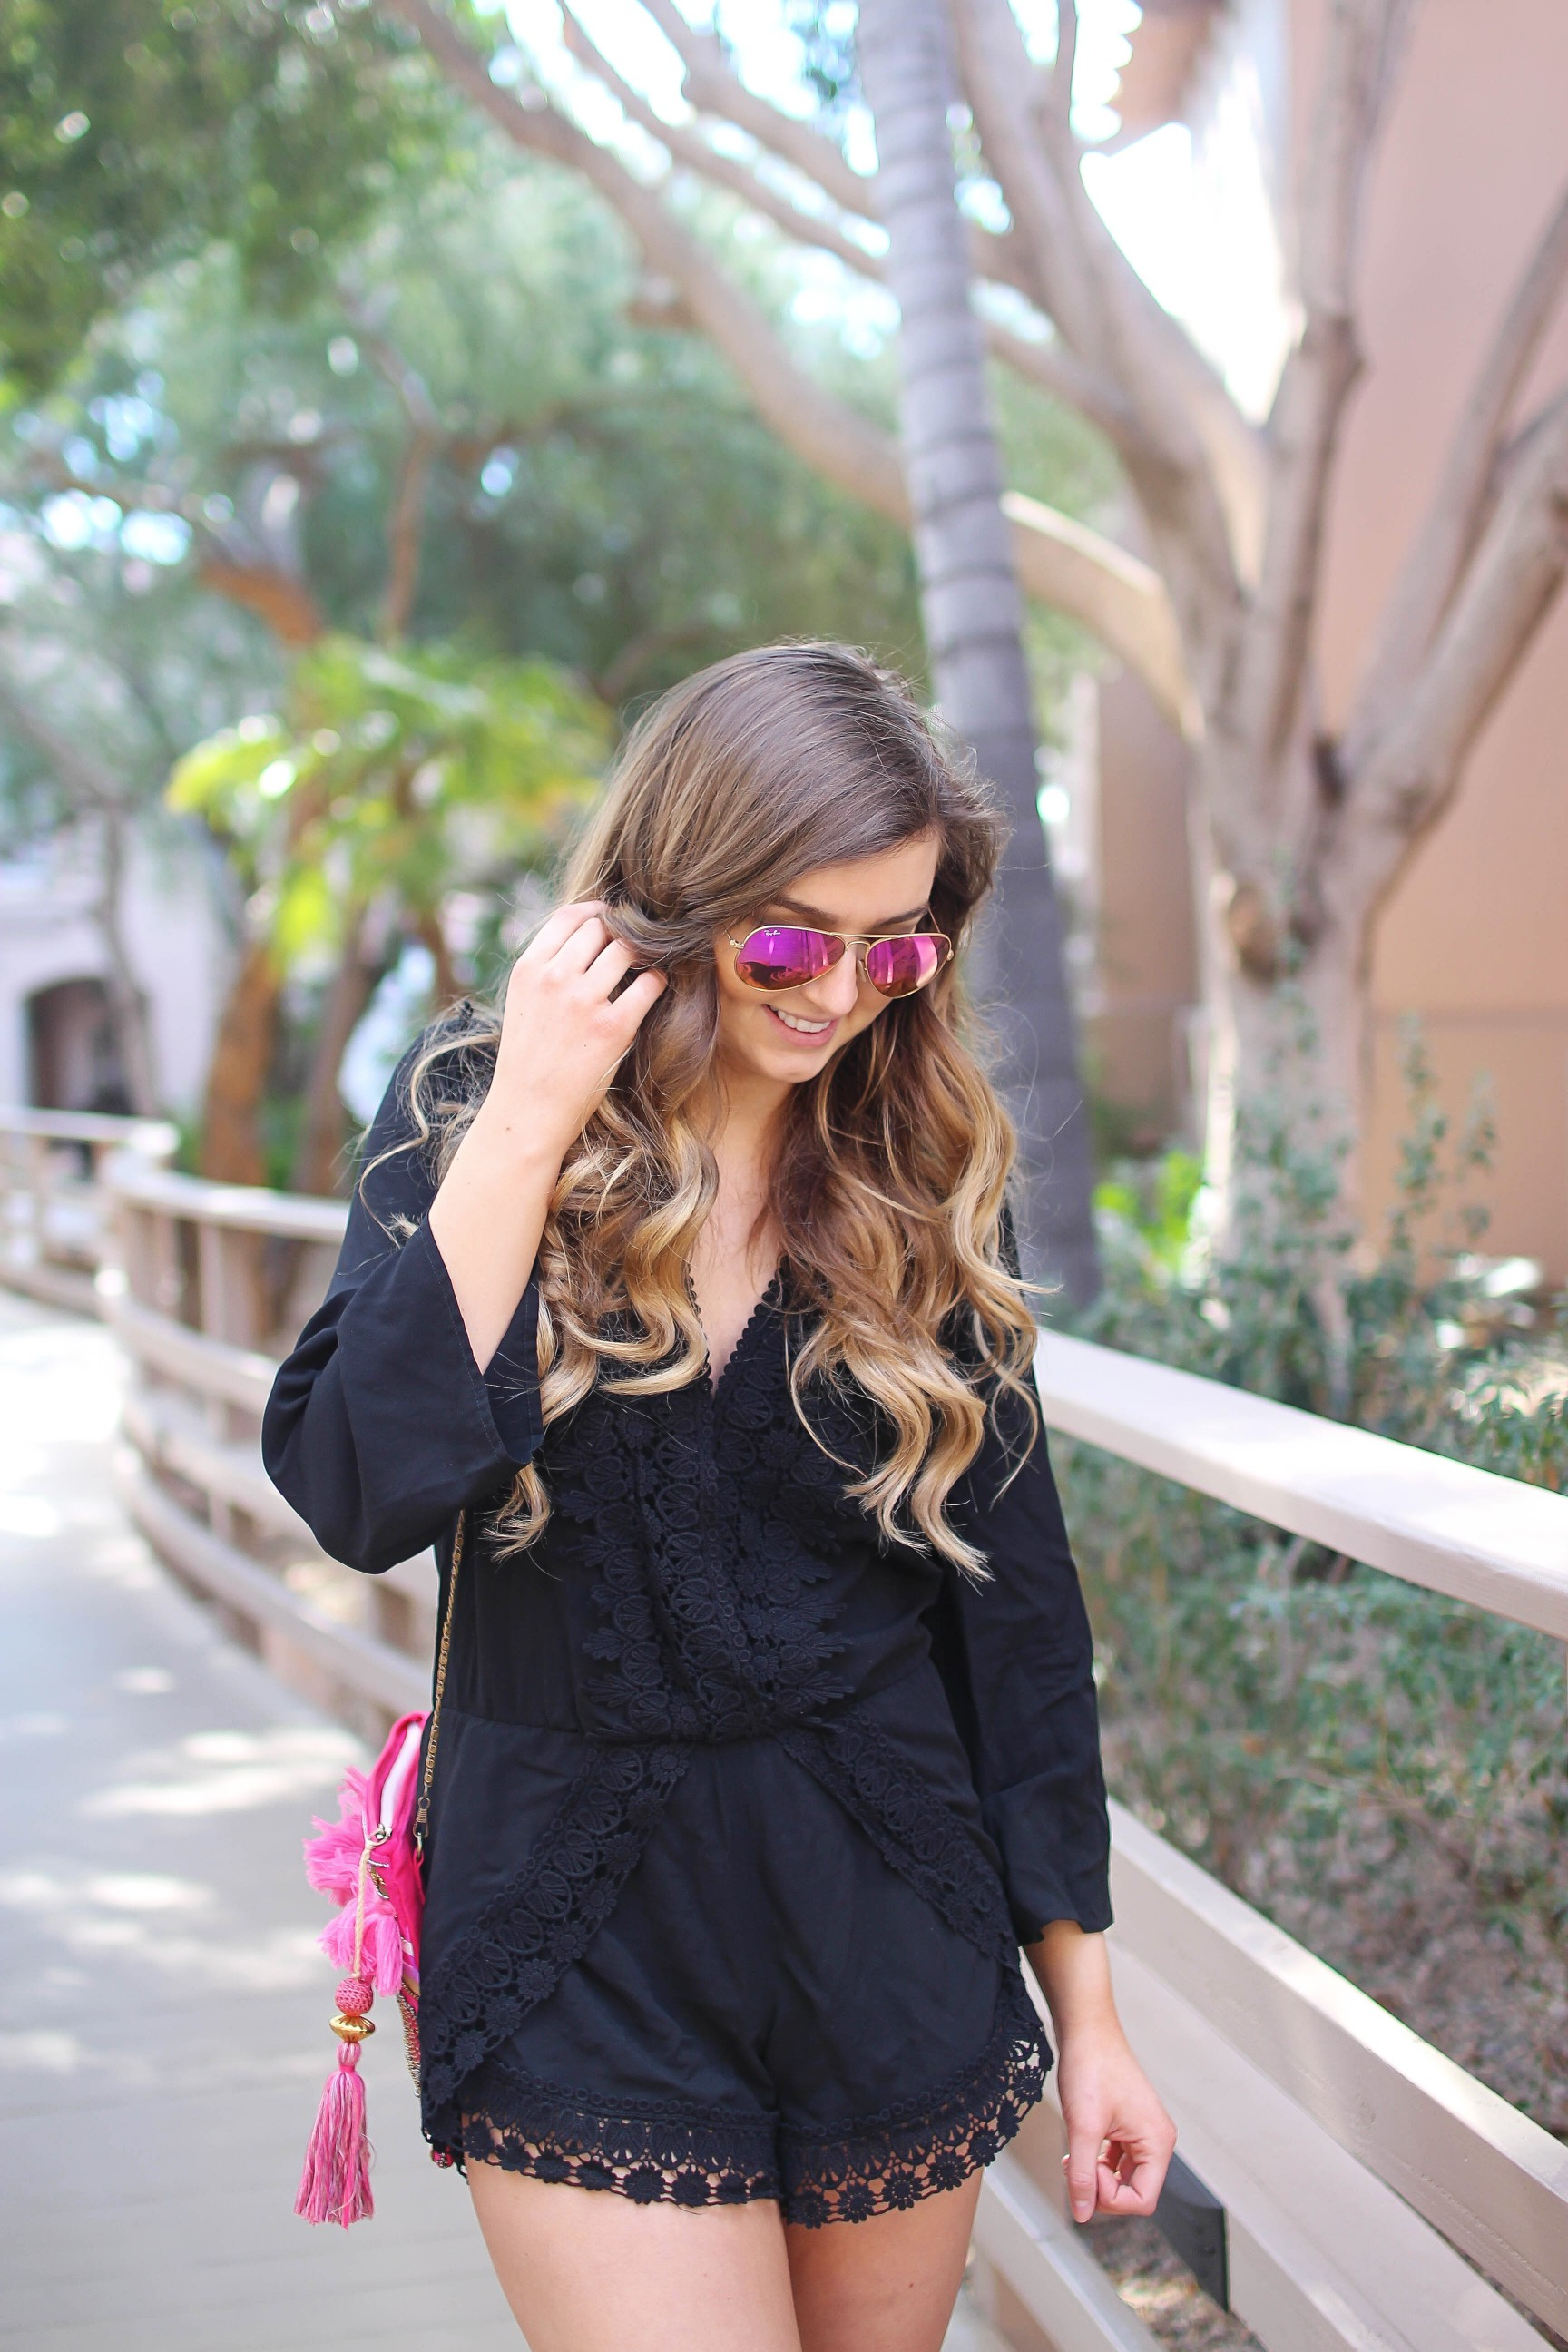 Black romper cover up perfect for spring break and this summer! I love the resort wear trend, so I paired this with a Moroccan style clutch and cute tassel shoes by Sam Edelman. By Lauren Lindmark on Daily Dose of Charm dailydoseofcharm.com